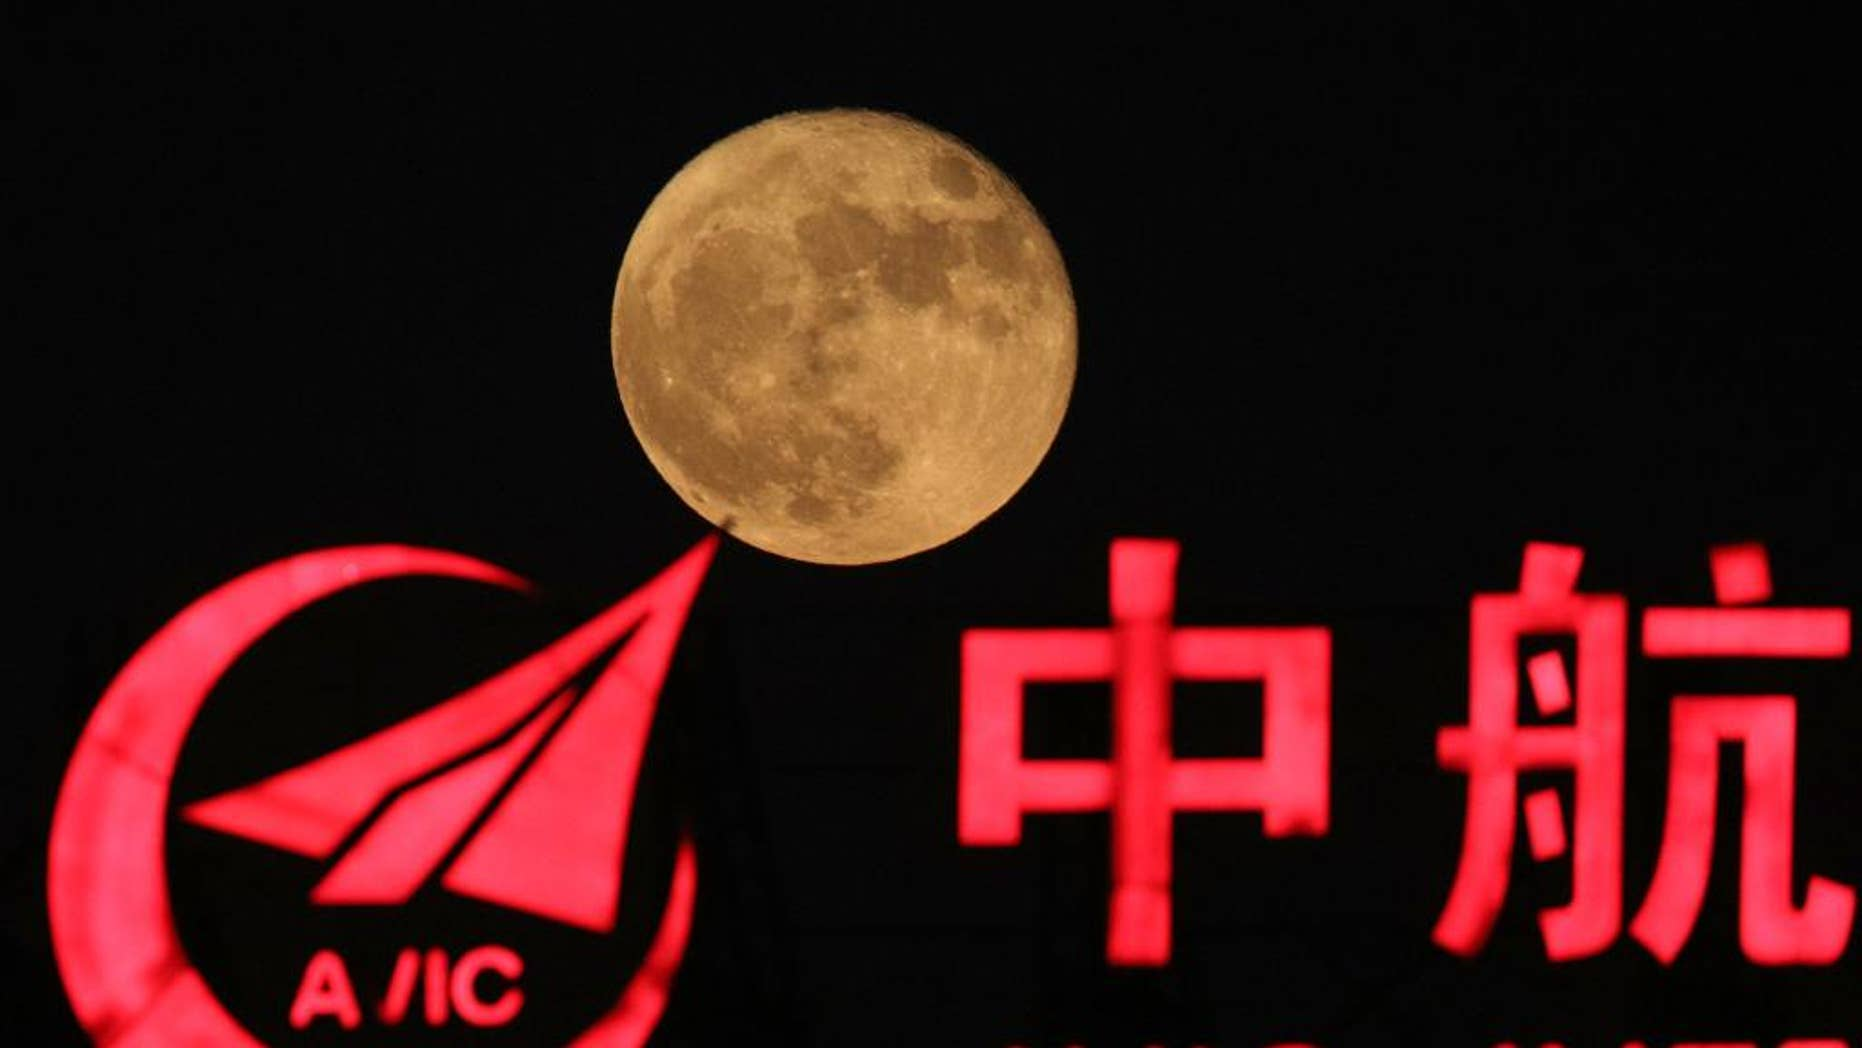 FILE - in This Tuesday, Nov. 15, 2016, file photo, the moon rises over a logo for AVIC or Aviation Industry Corp in Beijing, China. China is talking with the European Space Agency about collaborating on a human outpost on the moon. The chief engineer for China's space agency disclosed the talks Wednesday in Chinese state media. (AP Photo/Ng Han Guan, File )